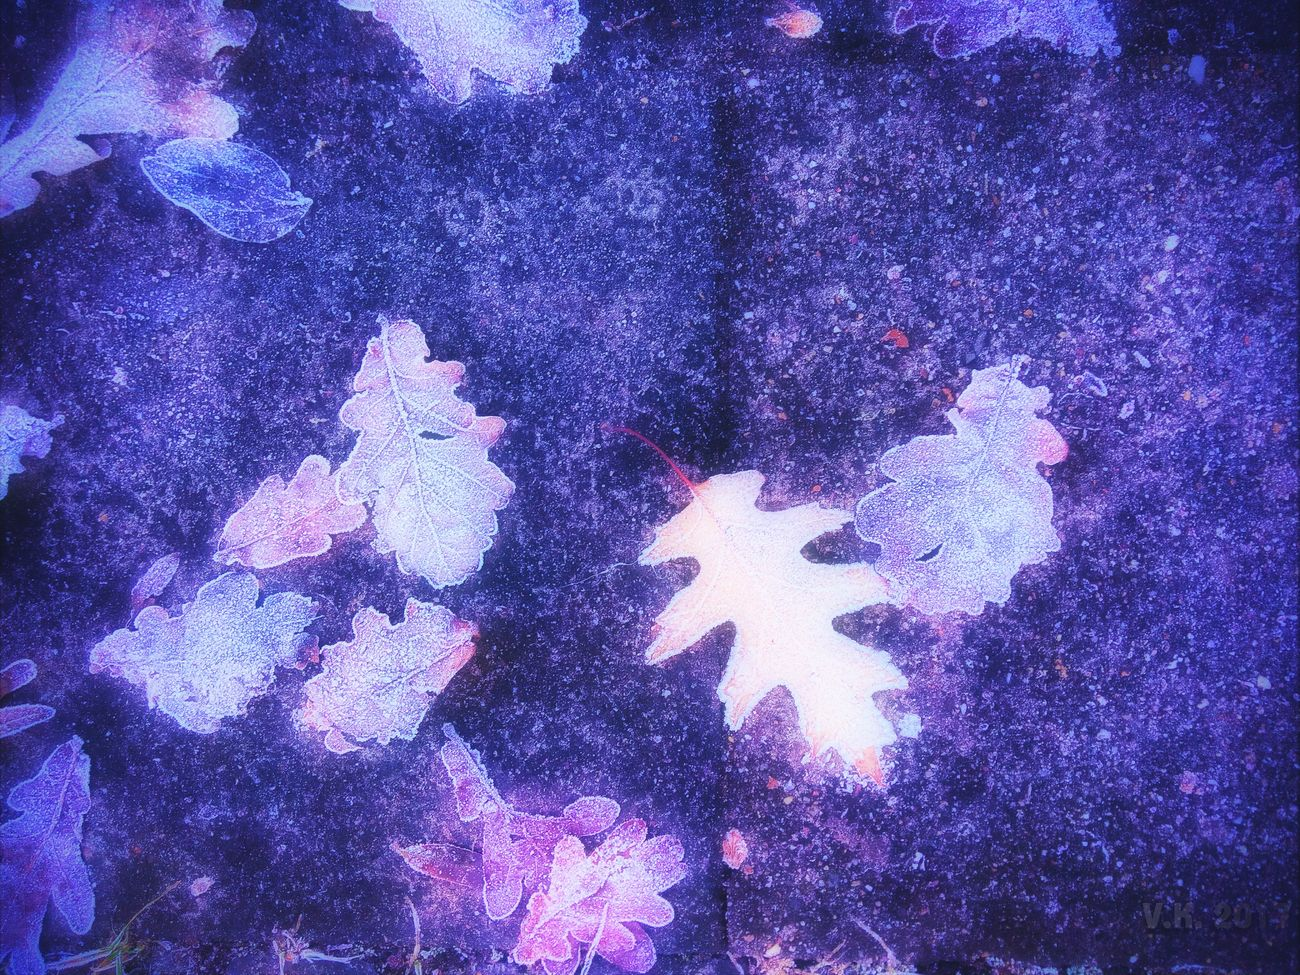 Leafes on the ground Pattern Close-up No People Purple Full Frame Illuminated Outdoors Leafes